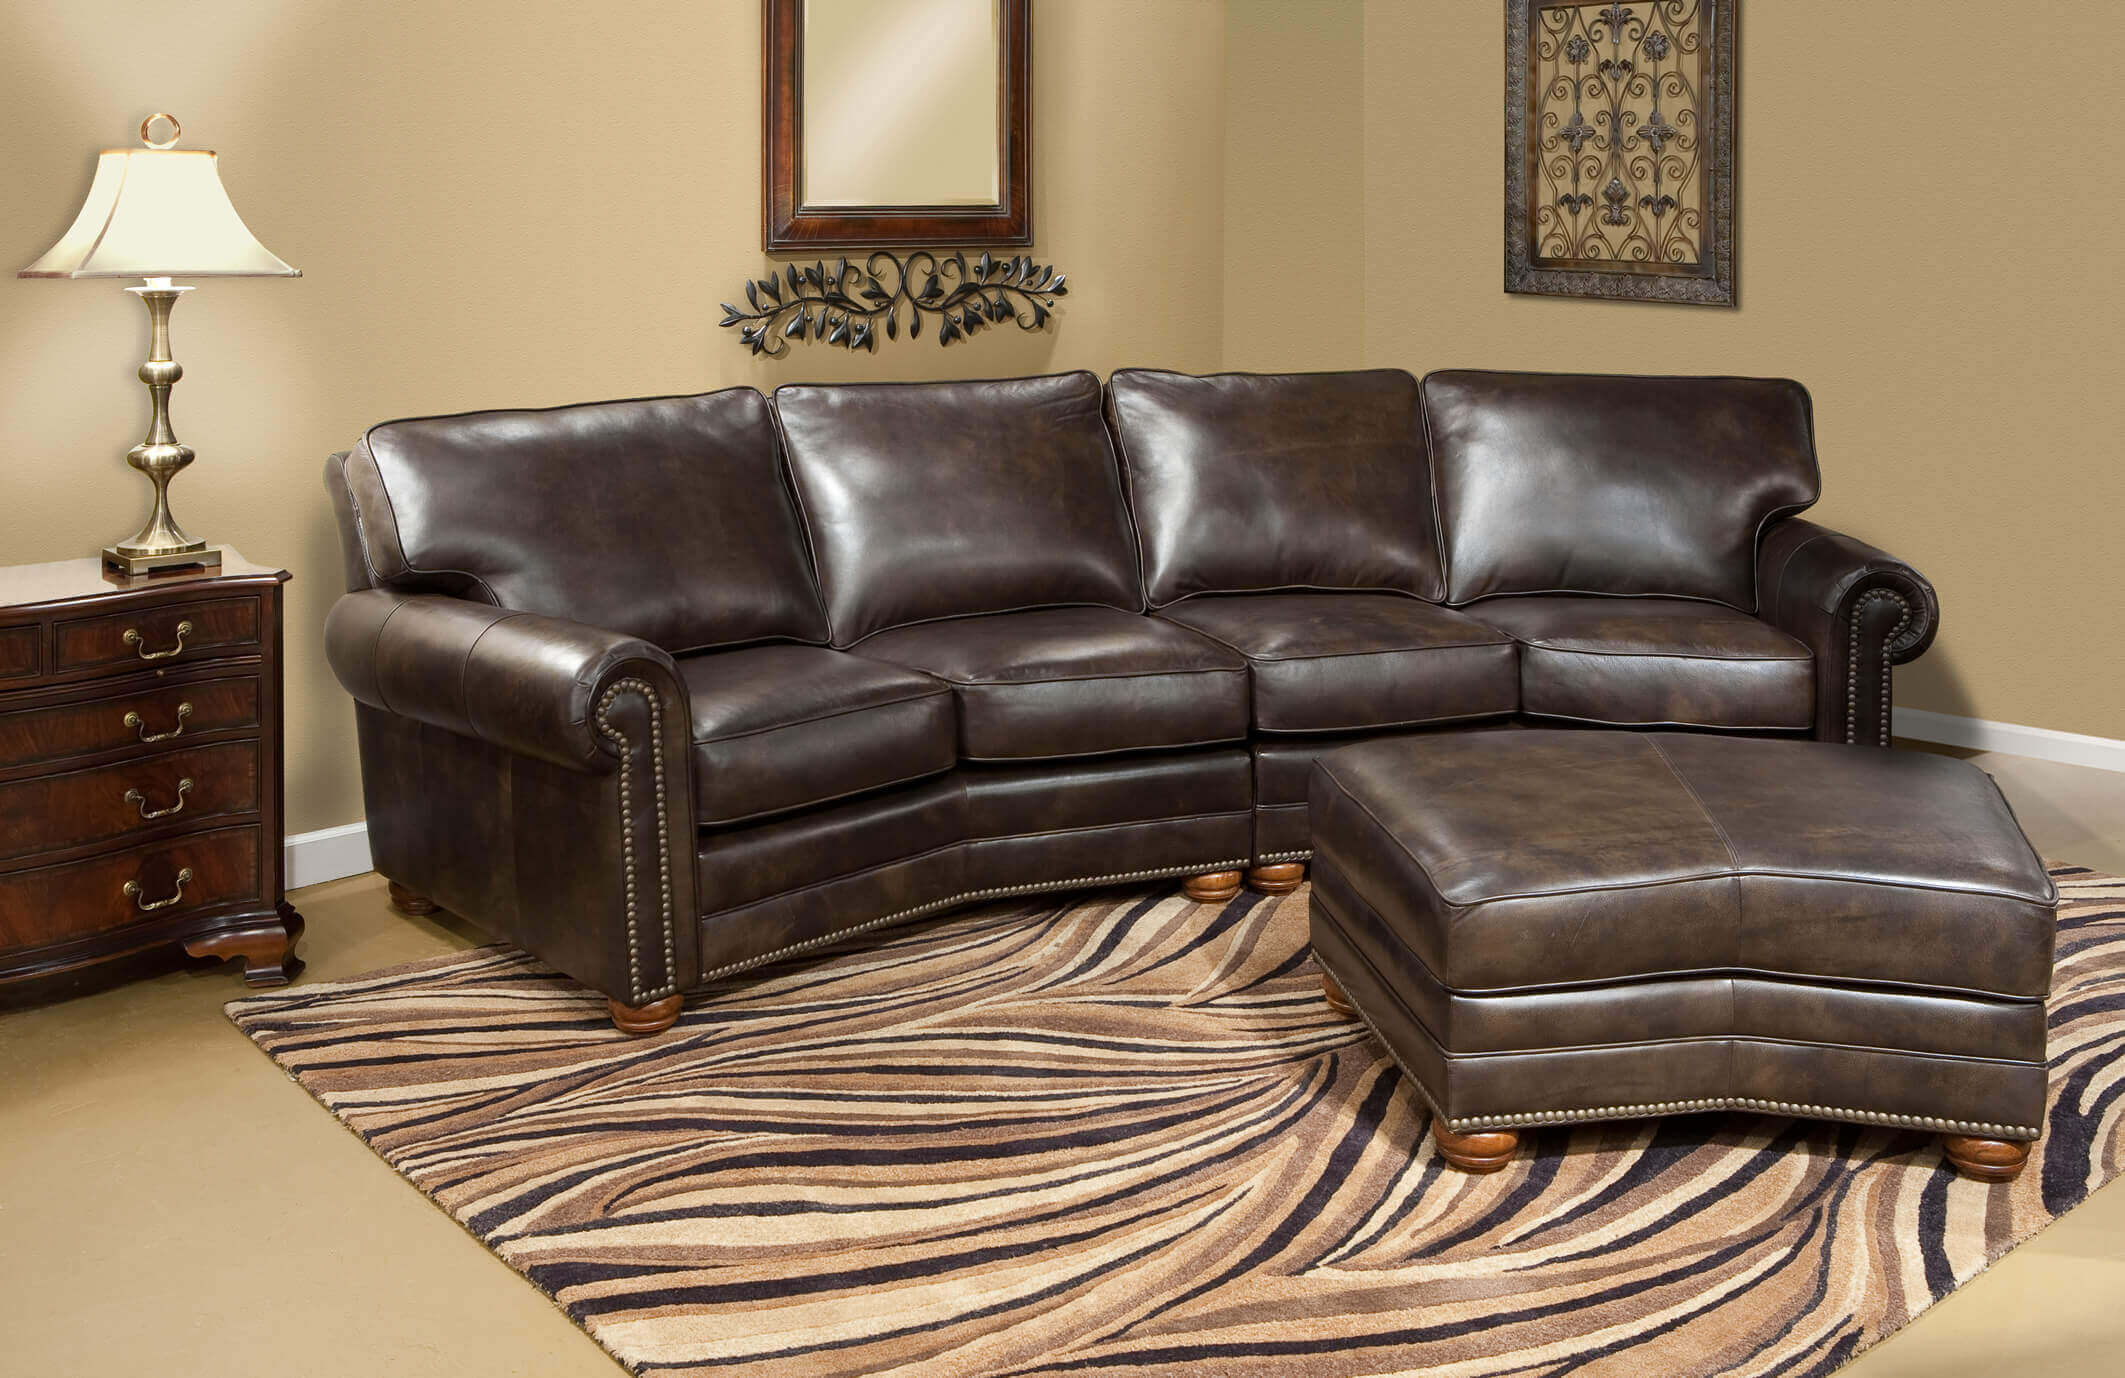 Michigan s st Selection Leather Sofas